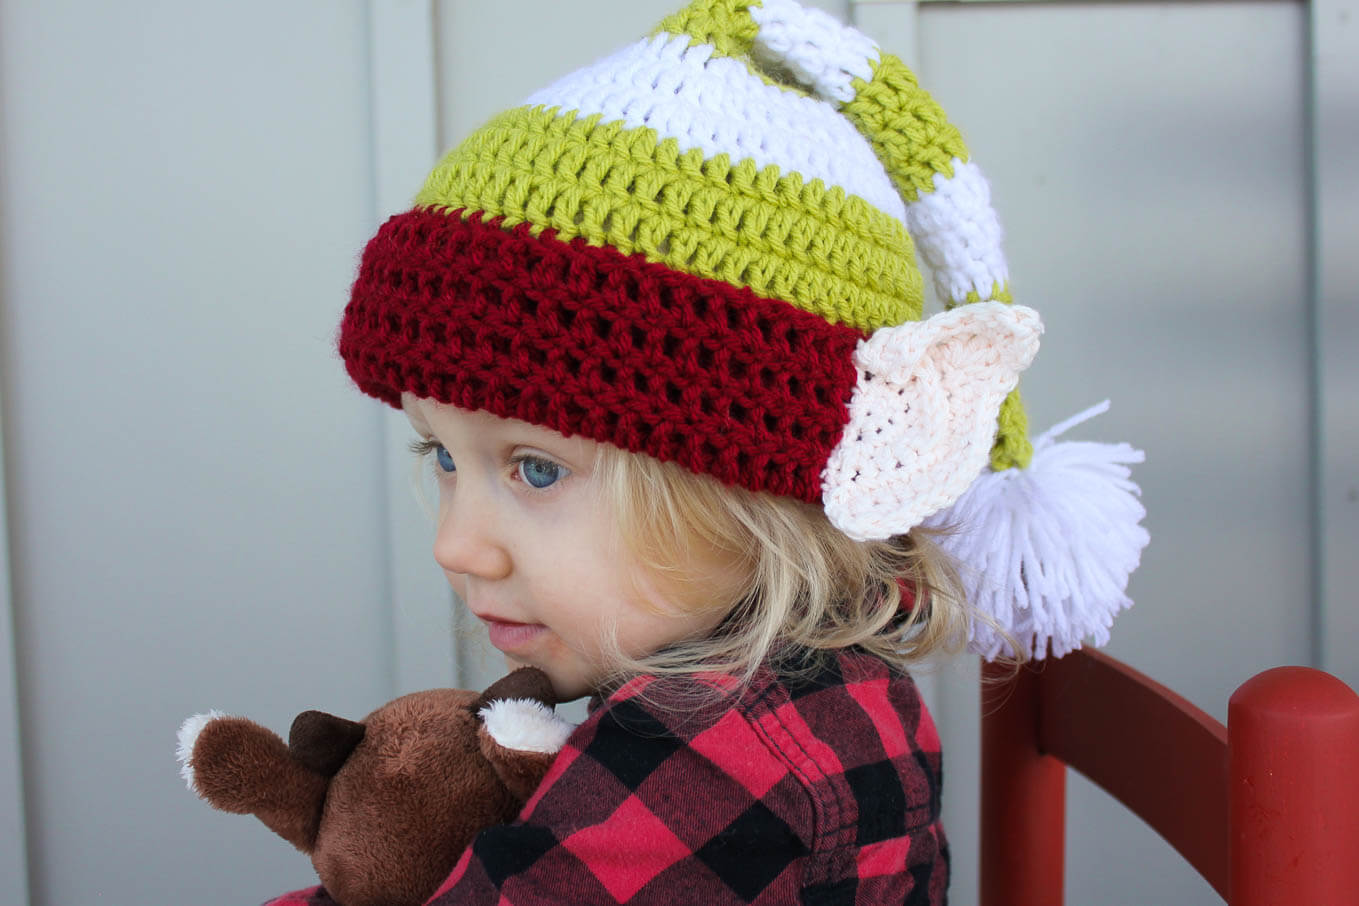 Free Crochet Pattern For Hat With Ears : Santas Helper Free Crochet Elf Hat Pattern (With Ears!)